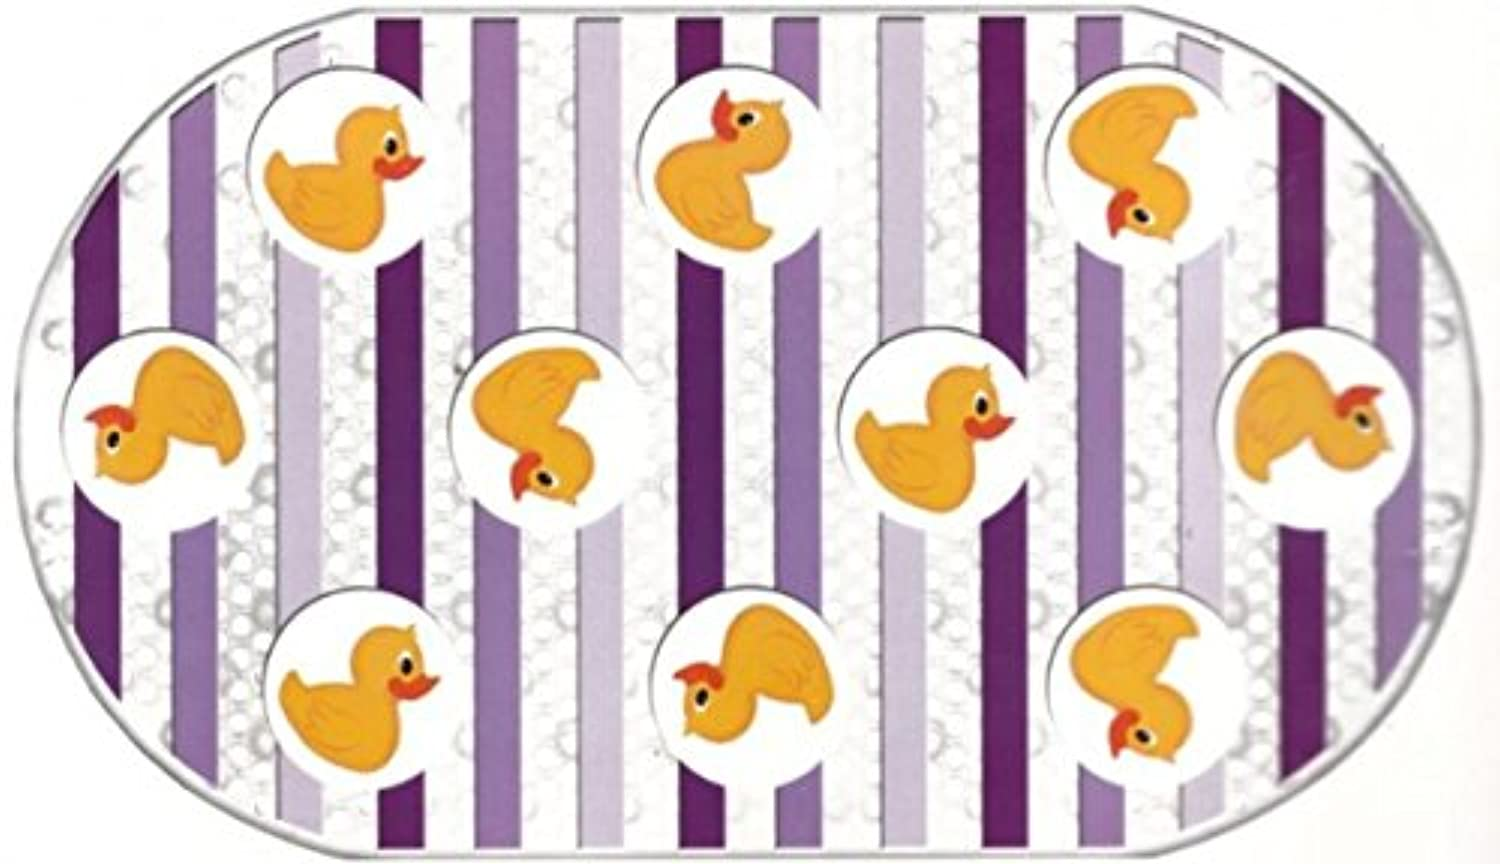 Rubber Duck Printed Bubble Bathtub Mat - 16 X 28 by Better Home